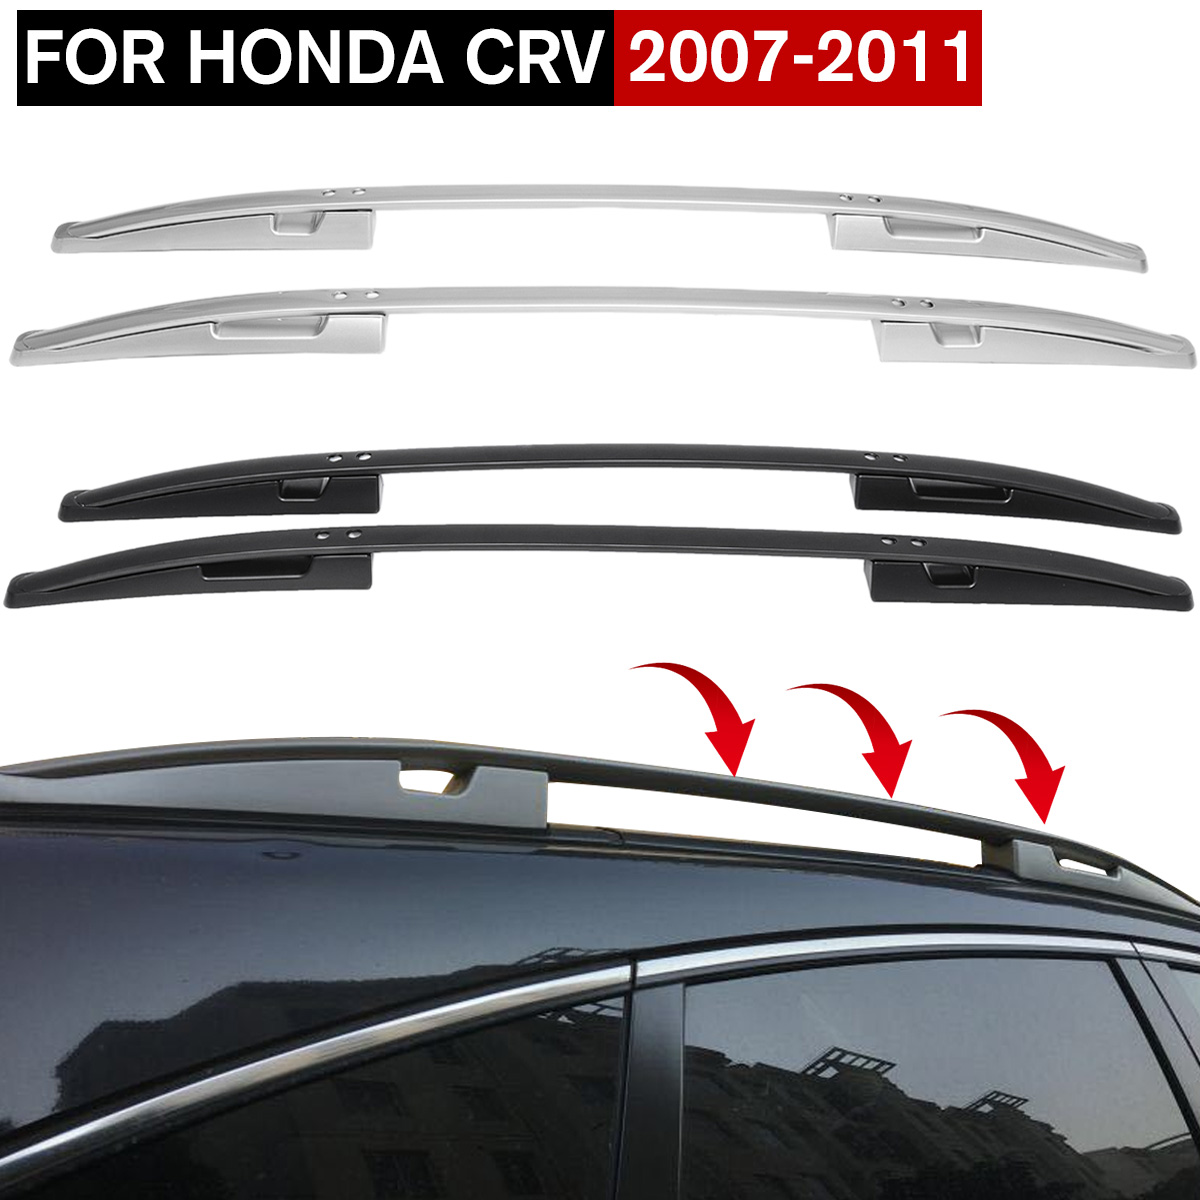 NEW 1Set Aluminum Alloy Roof Rack With Screws And Wrench Baggage Holder For Honda For CR-V CRV 2007 2008 2009 2010 2011